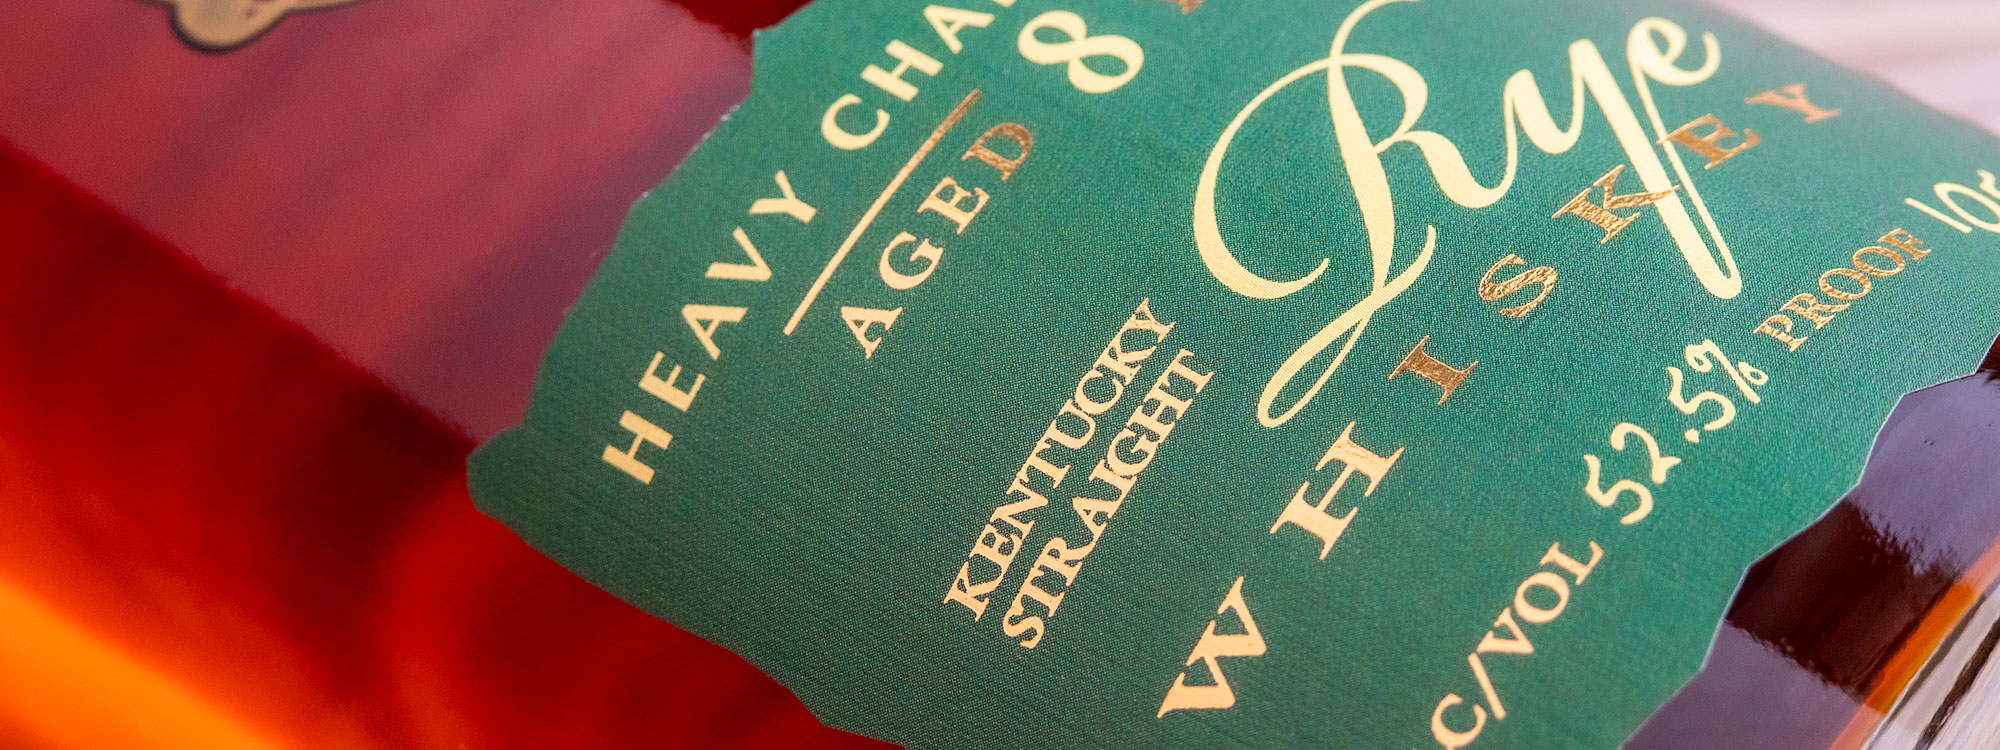 Parker's Heritage Collection: Heavy Char Barrels Straight Rye banner